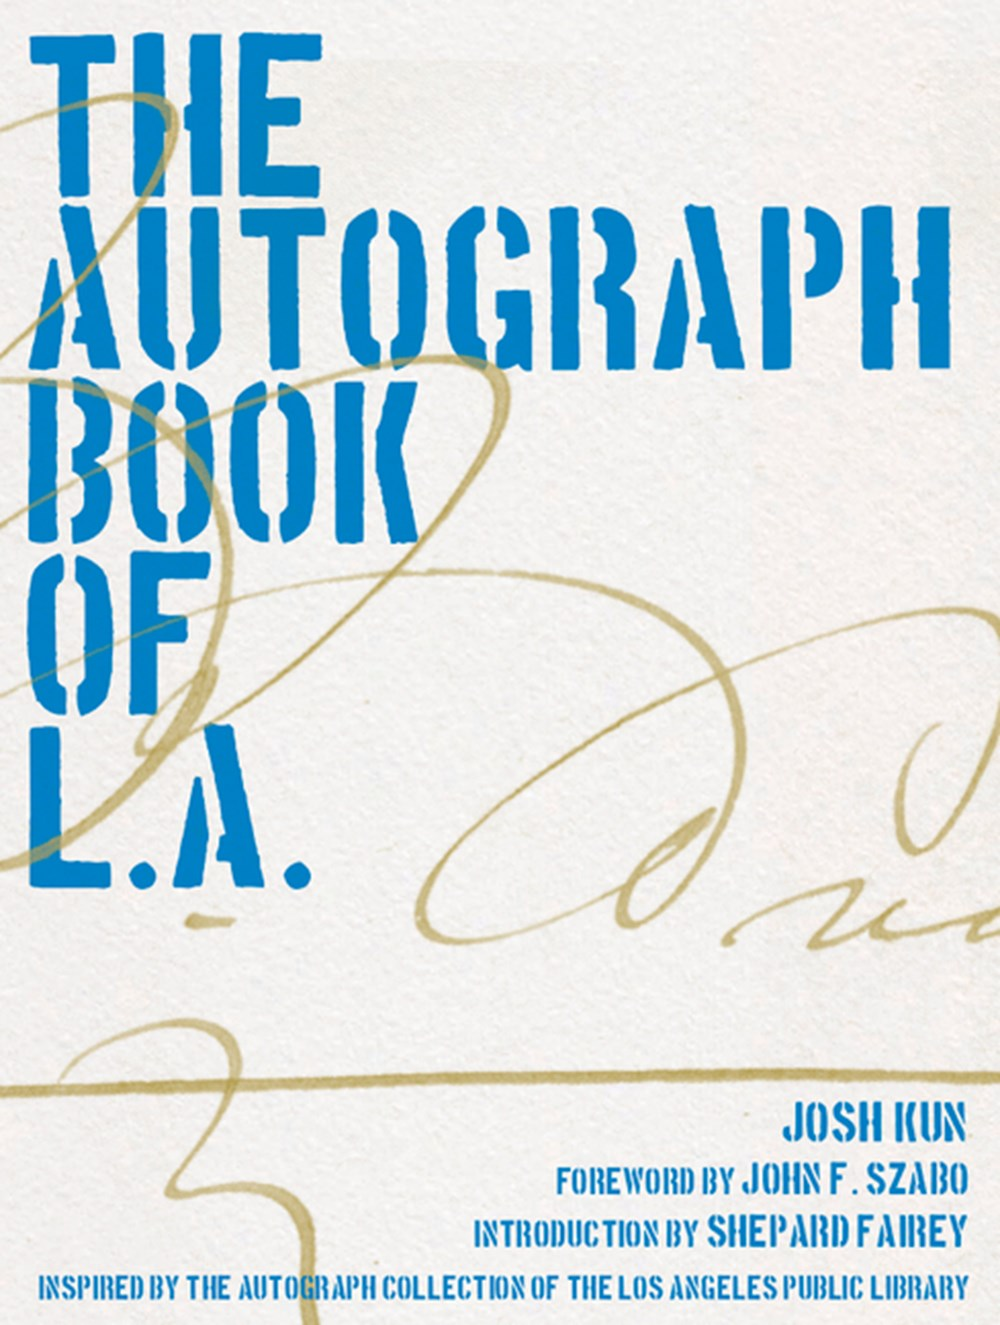 Autograph Book of L.A. Improvements on the Page of the City